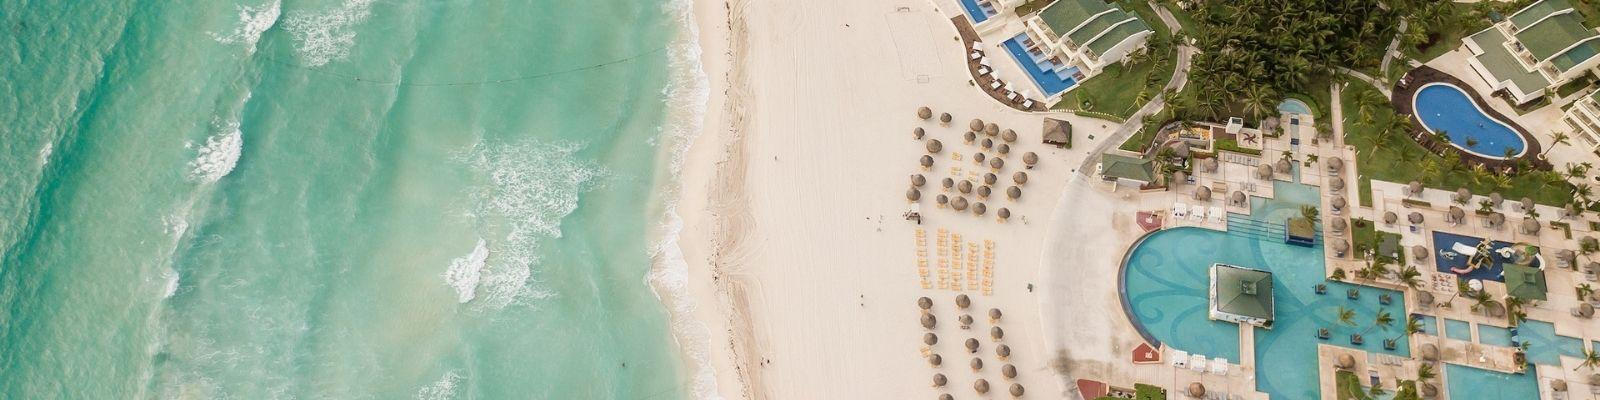 Visiting Cancun for the First Time? Here's What to See and Do